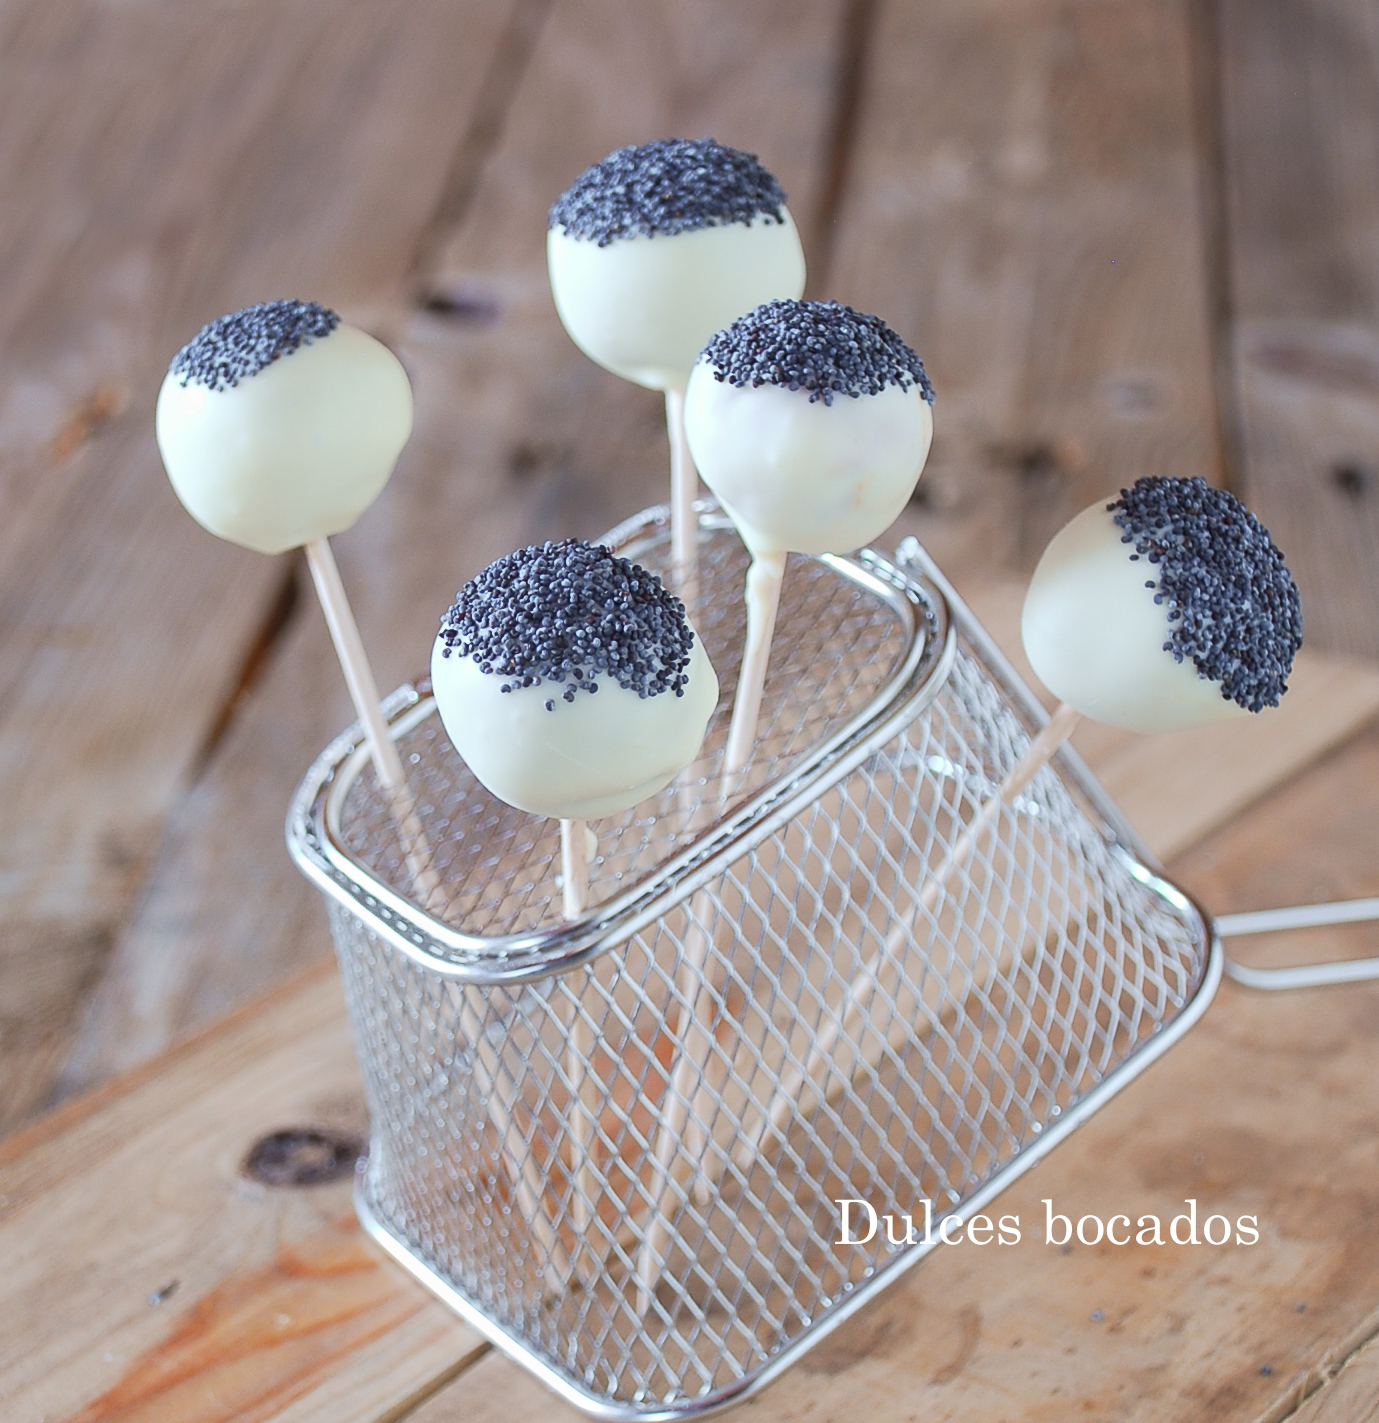 Cake pop de sobrasada y chocolate blanco